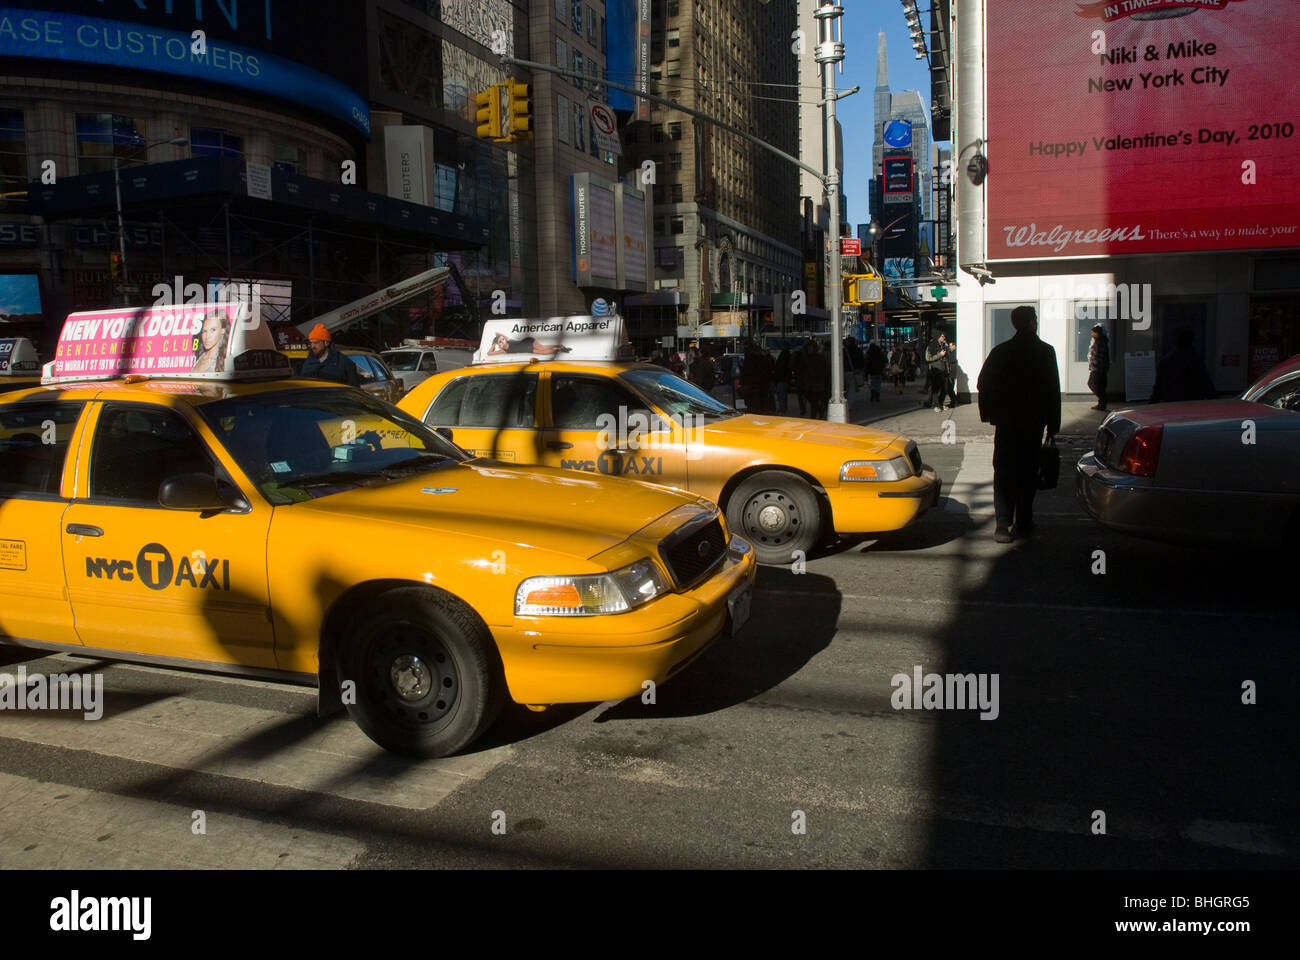 Pedestrians maneuver through gridlocked traffic in Times Square in New York on Friday, February 12, 2010. (© - Stock Image